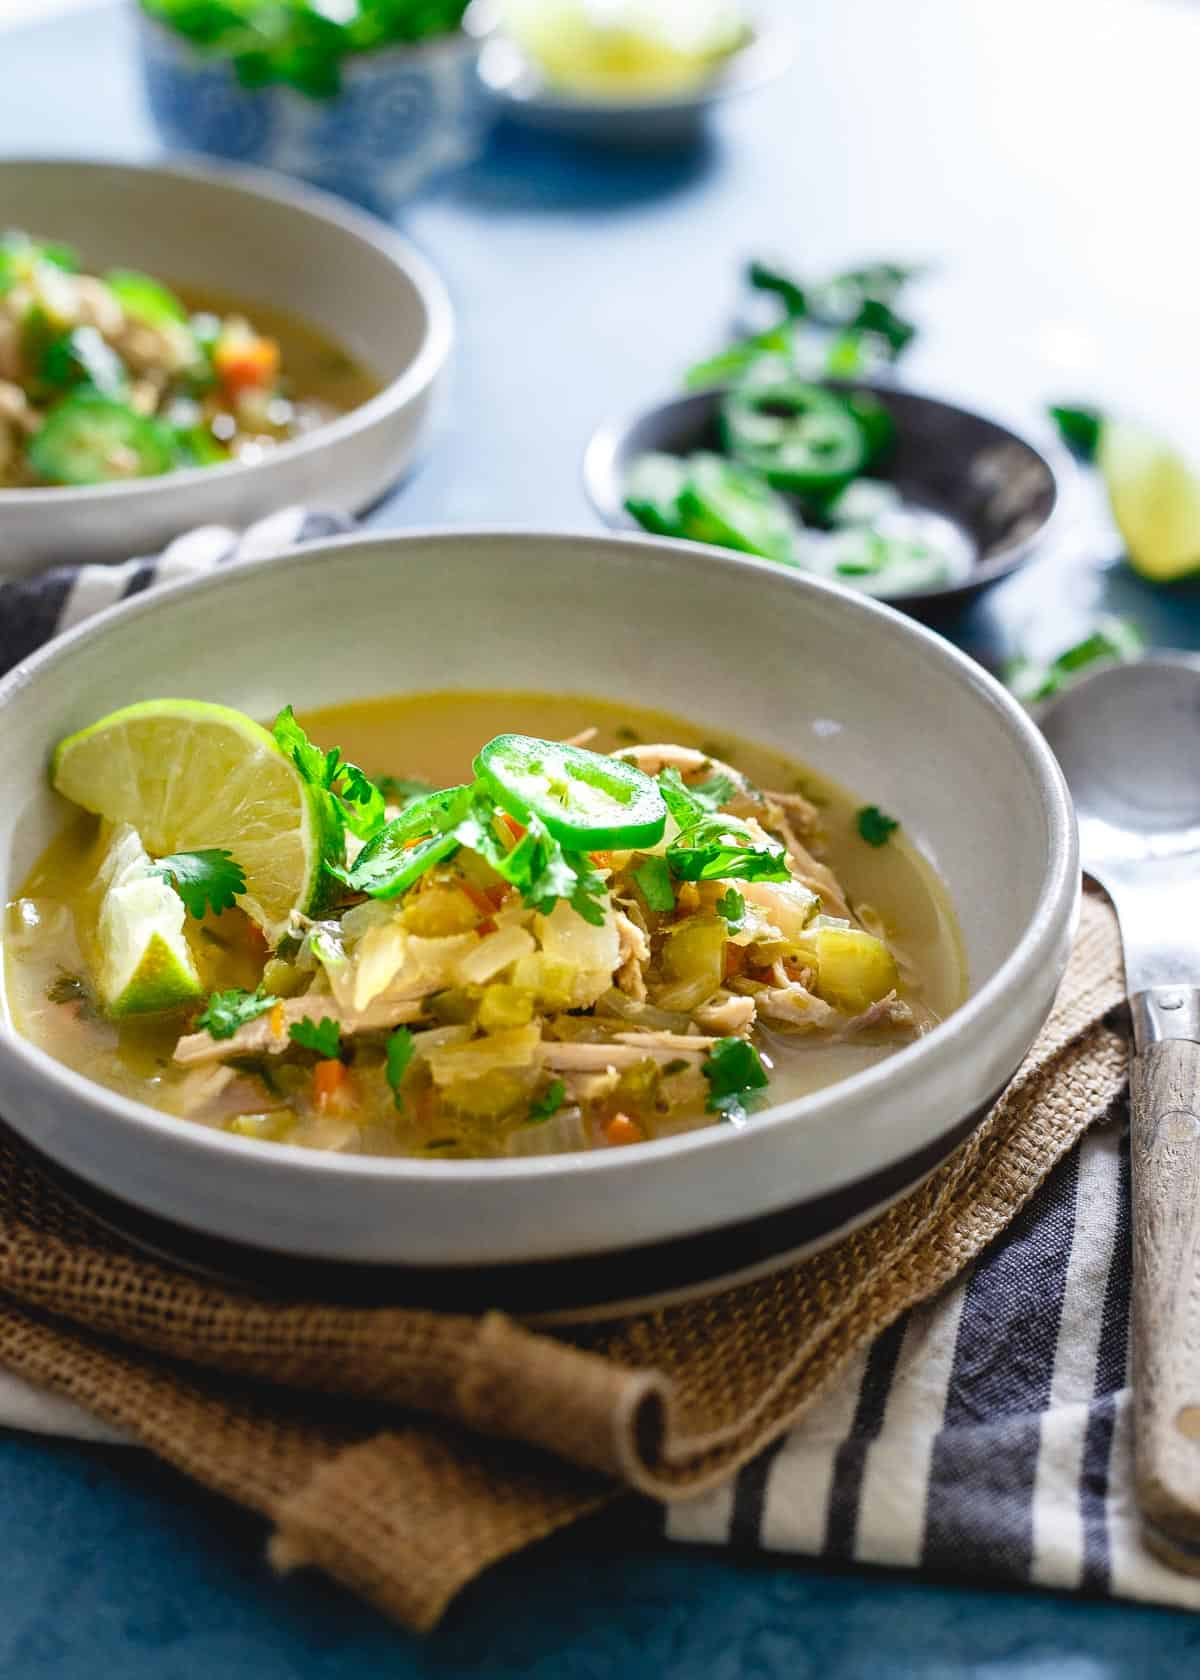 Spicy chicken lime soup is perfectly comforting for winter with a delicious tangy broth.